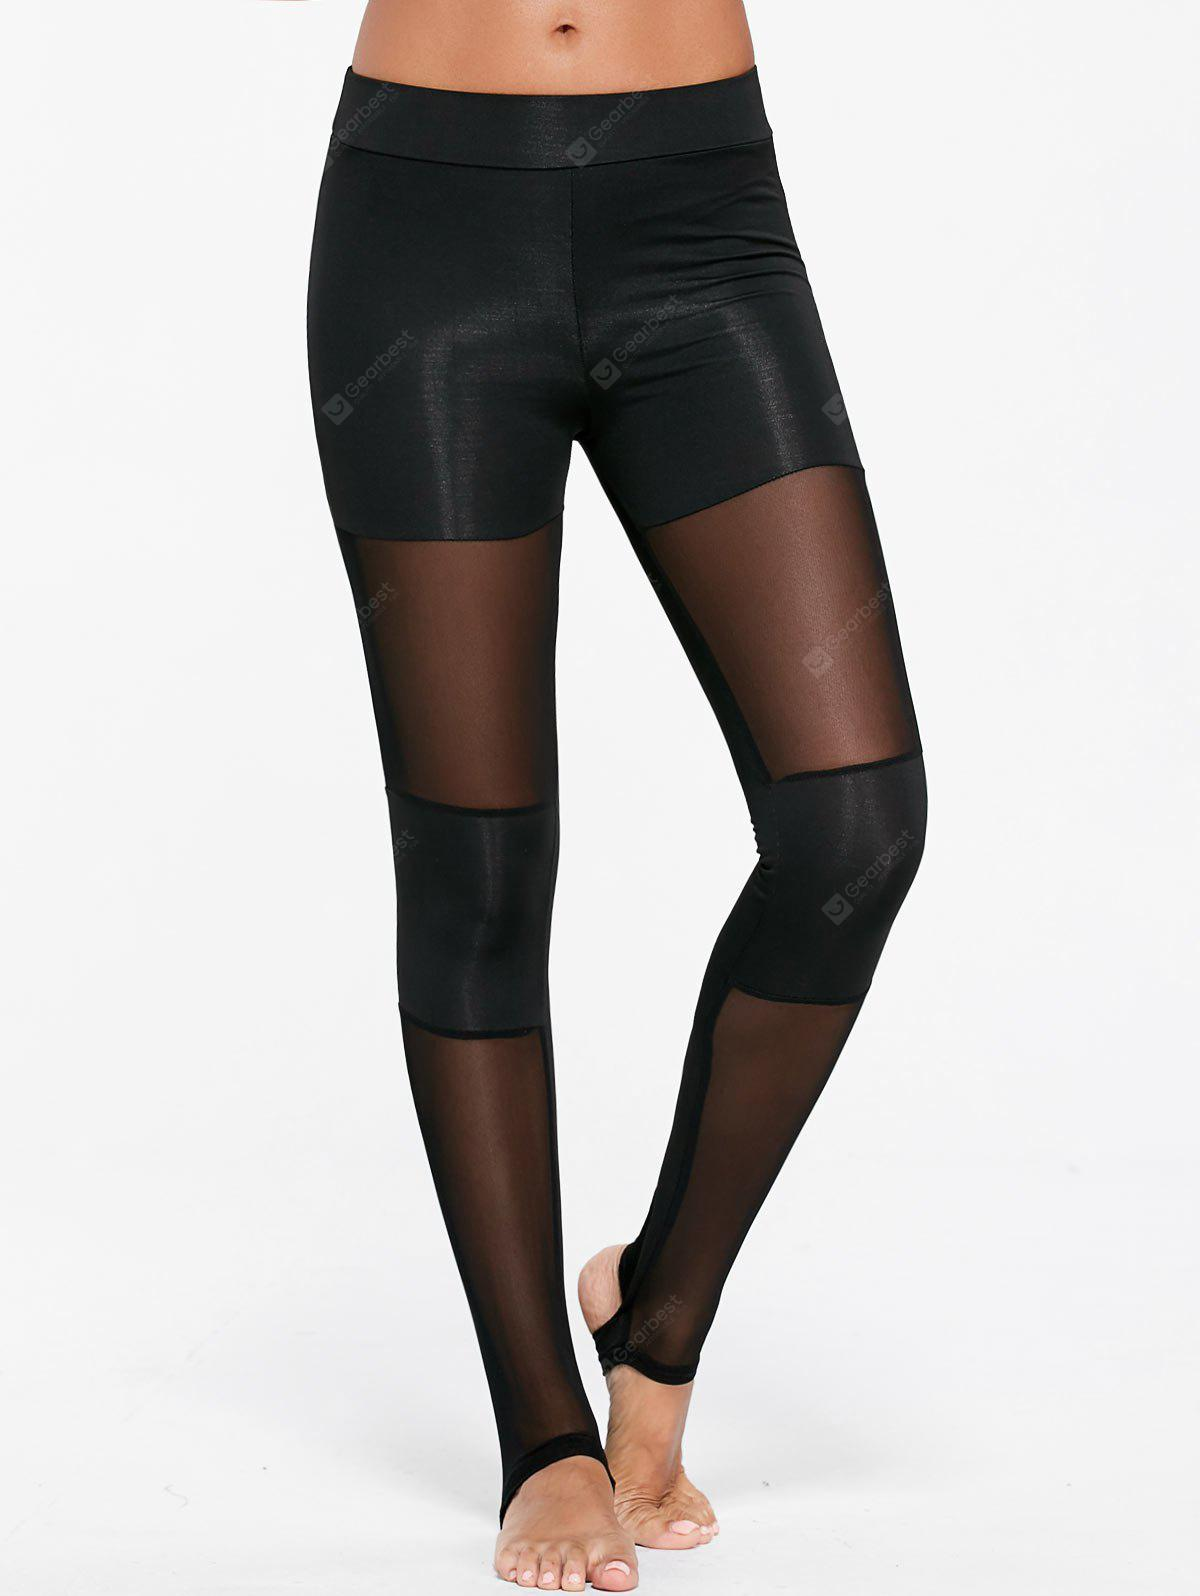 Sheer Mesh Insert Sports Stirrup Leggings